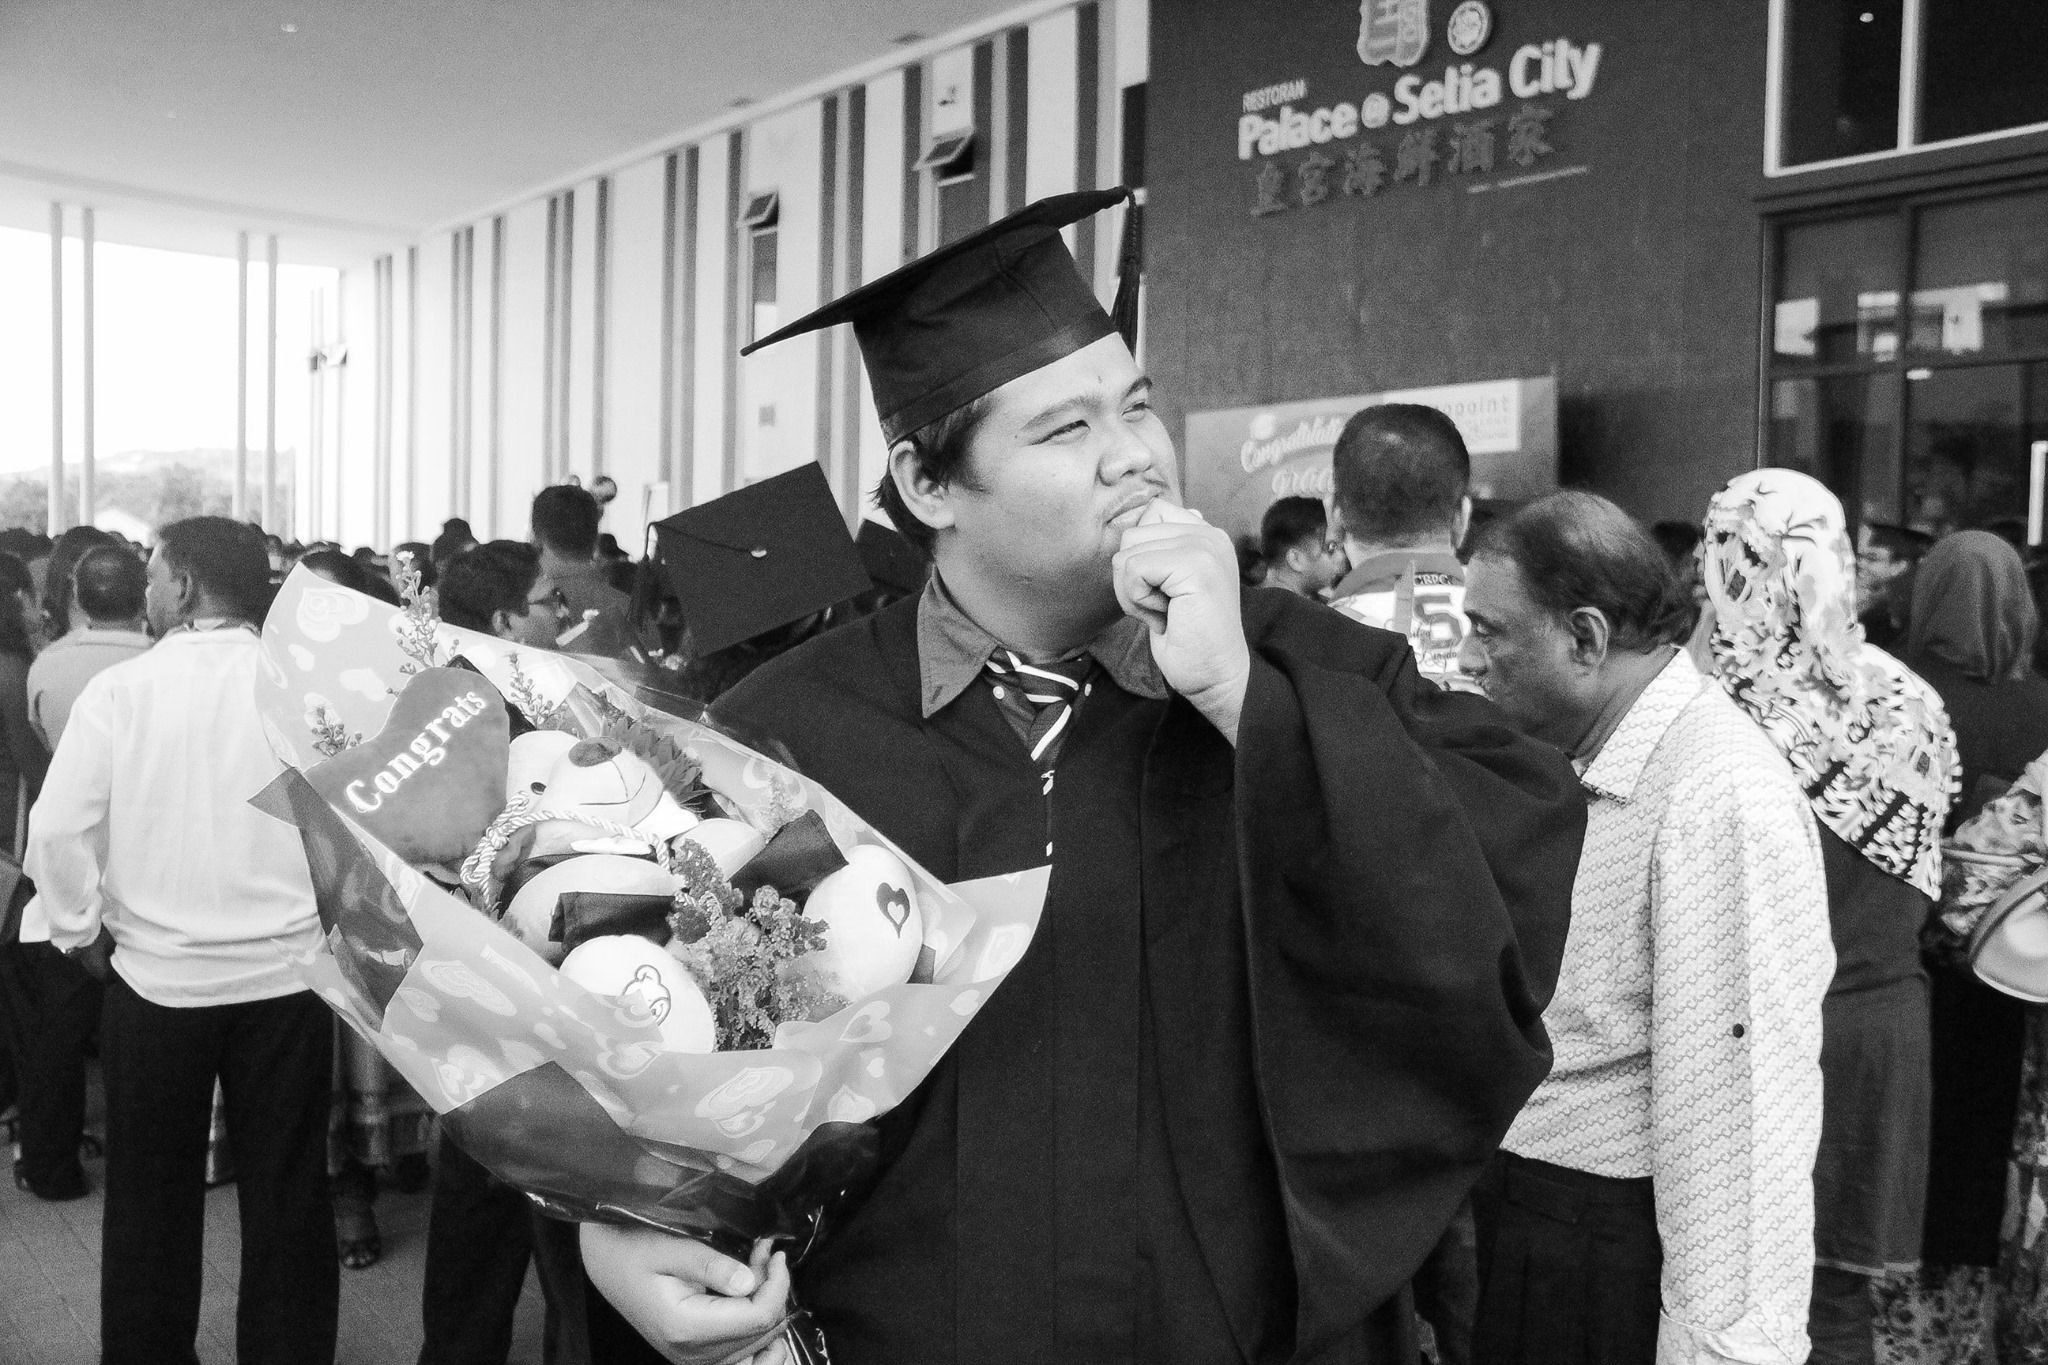 Muhammad Hilman Bin Mohd Hardi on his graduation day, in a cap and gown and holding a teddy bear bouquet.